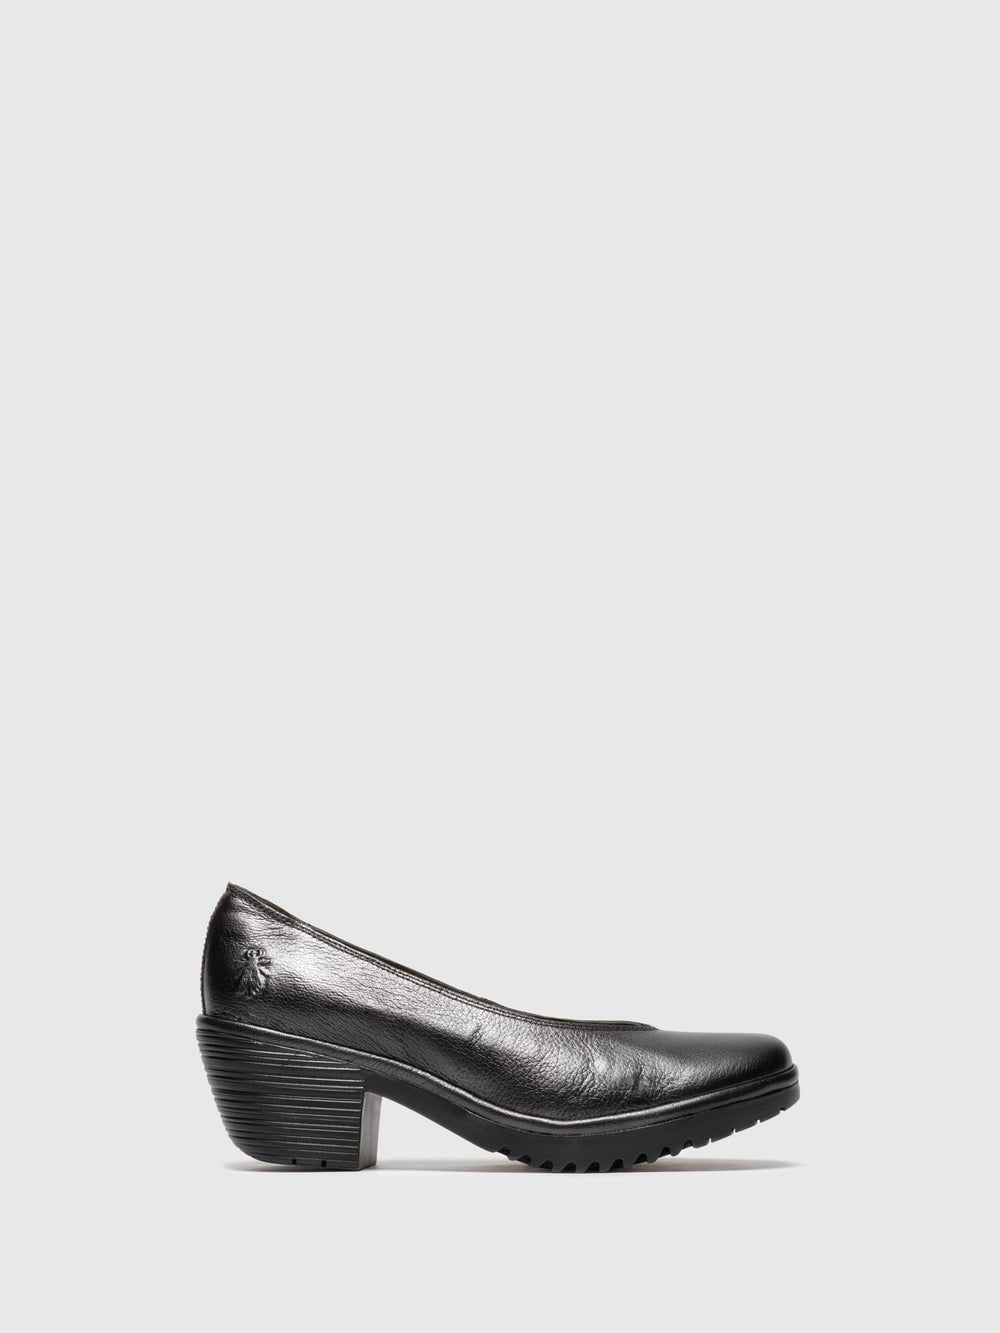 Round Toe Pumps Shoes WALO988FLY GRAPHITE